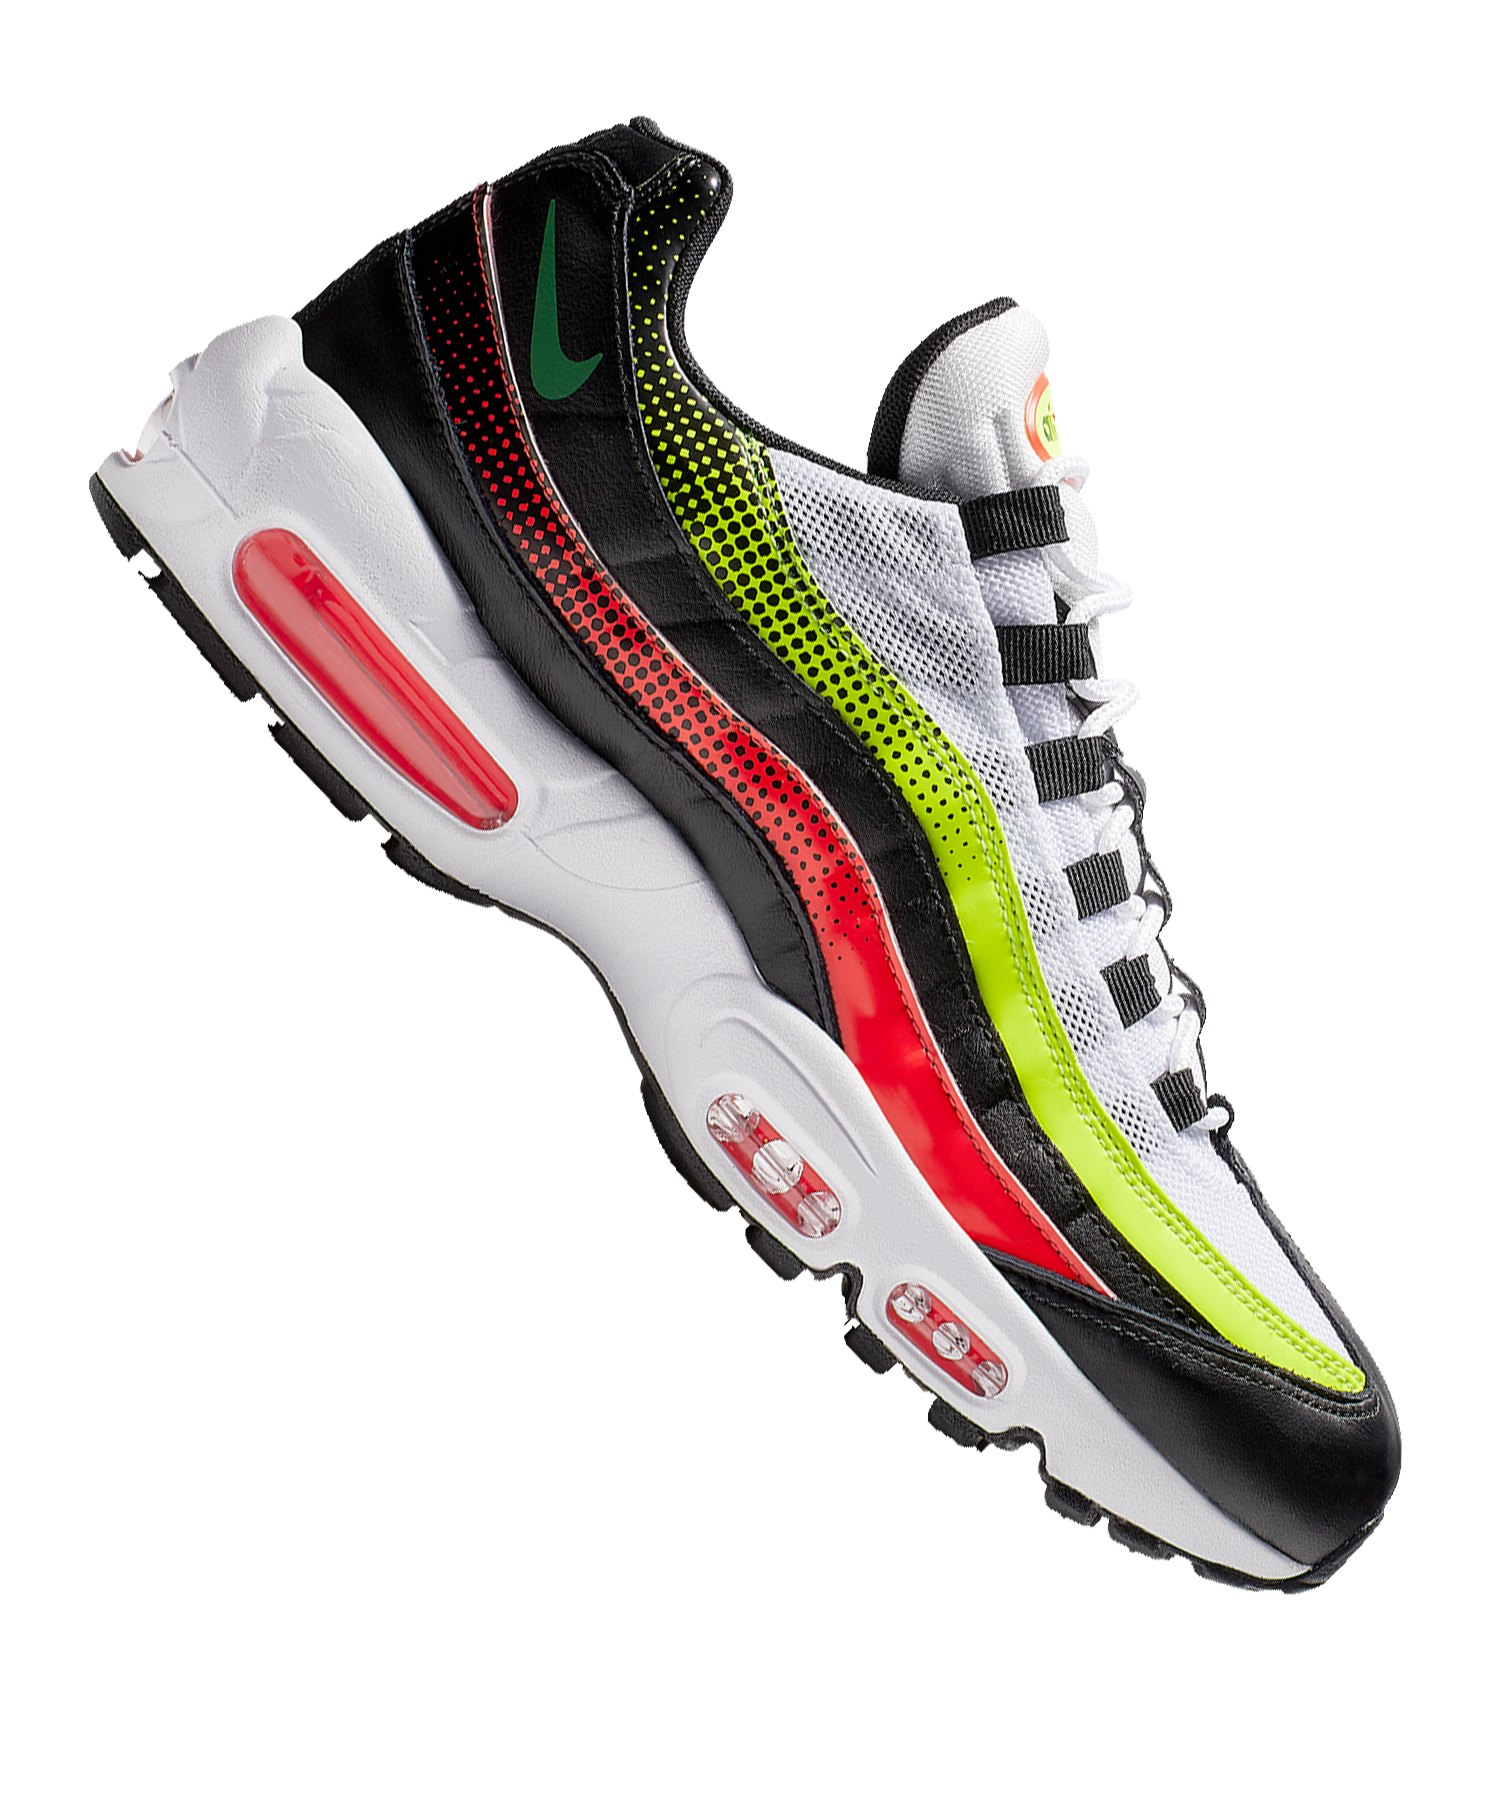 info for cfece c15a6 Nike Air Max 95 SE Sneaker Schwarz Rot Weiss F004 |Streetstyle ...